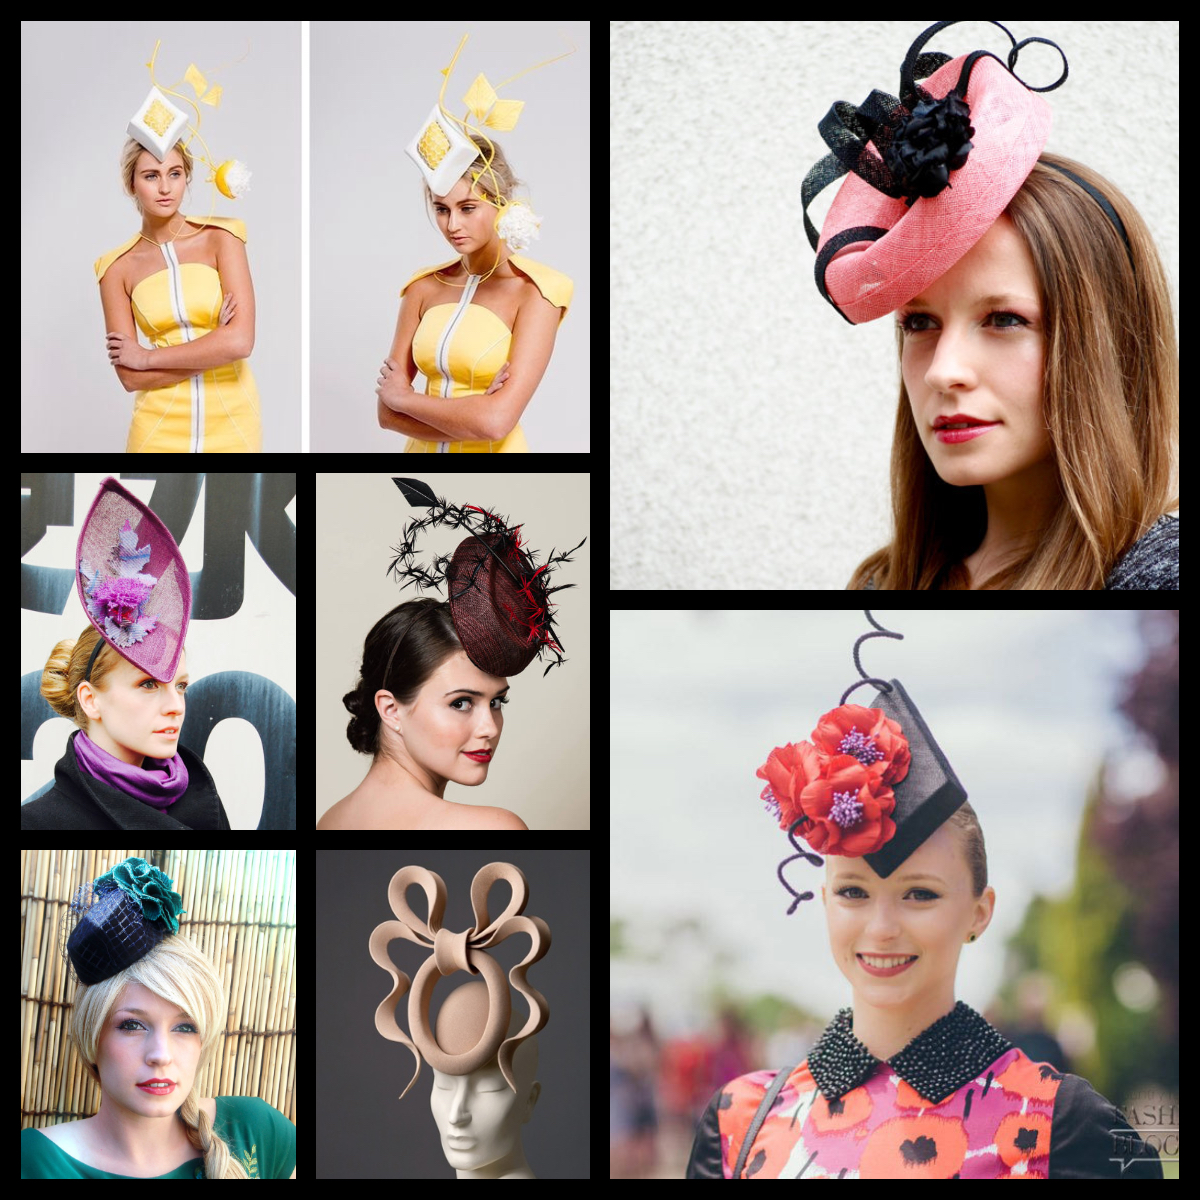 From Top left clockwise: Rebecca Share Millinery,Aka Tombo Millinery, Alexandra Guy Millinery,Steven Jones, Aka Tombo Millinery, Milli Starr Millinery.